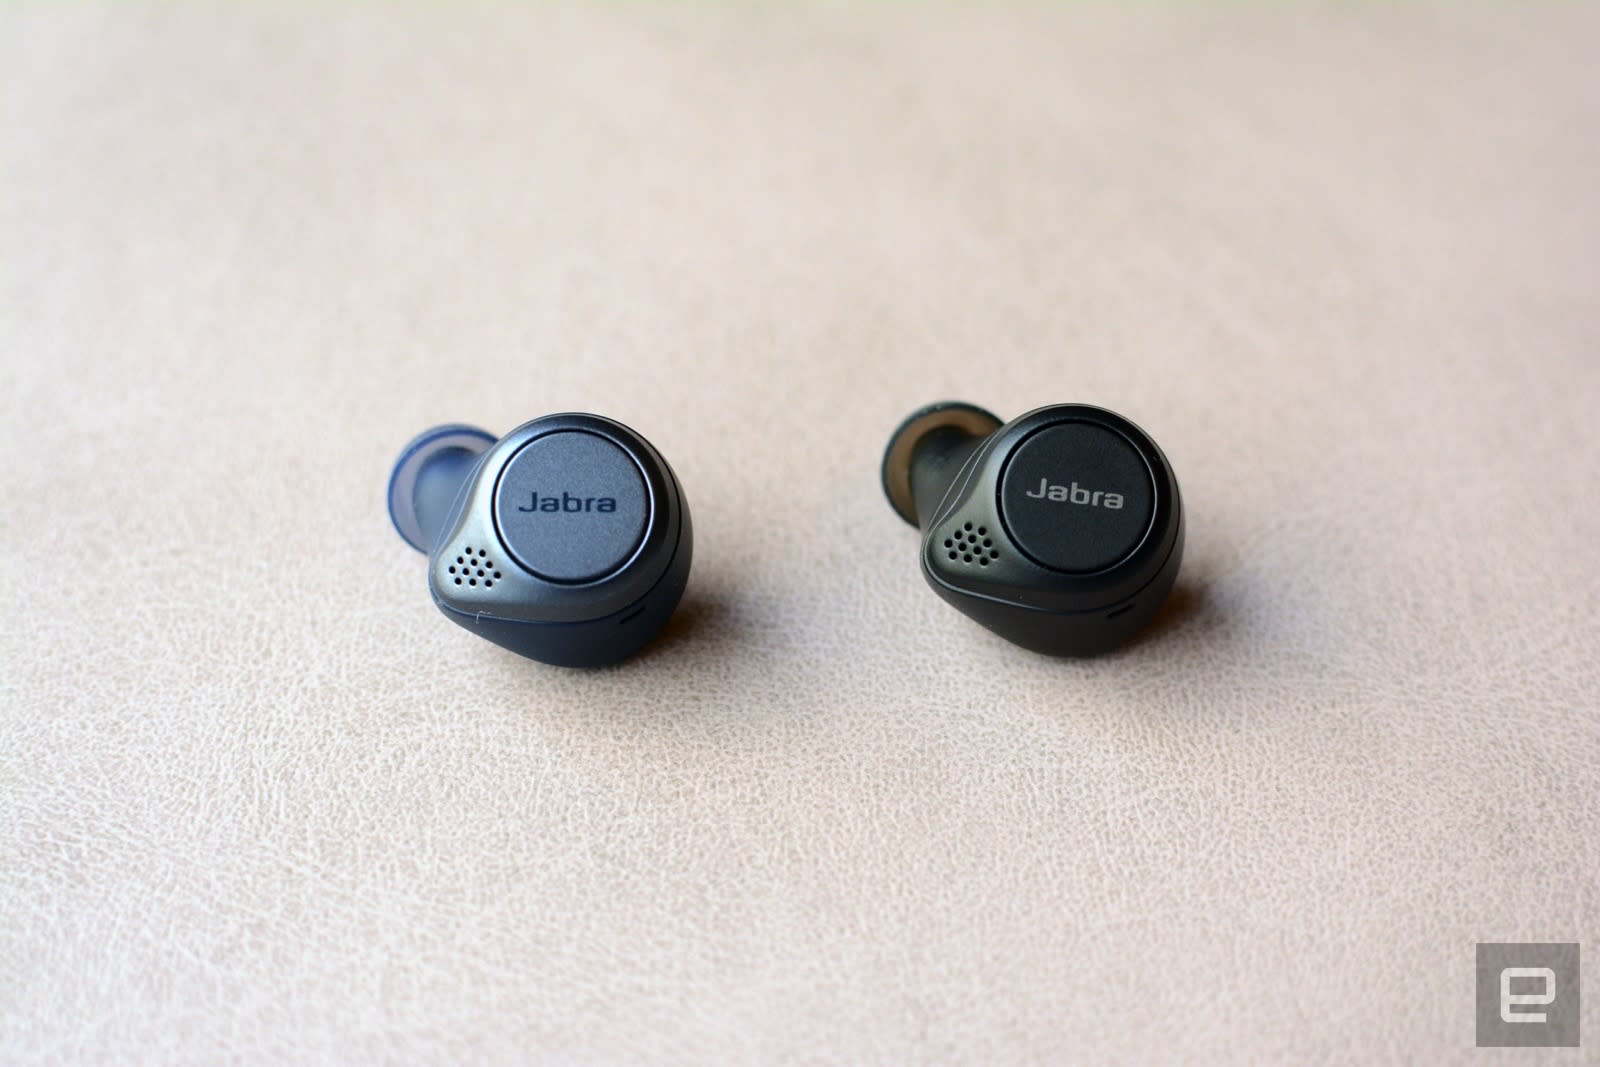 Jabra Elite Active 75t hands-on